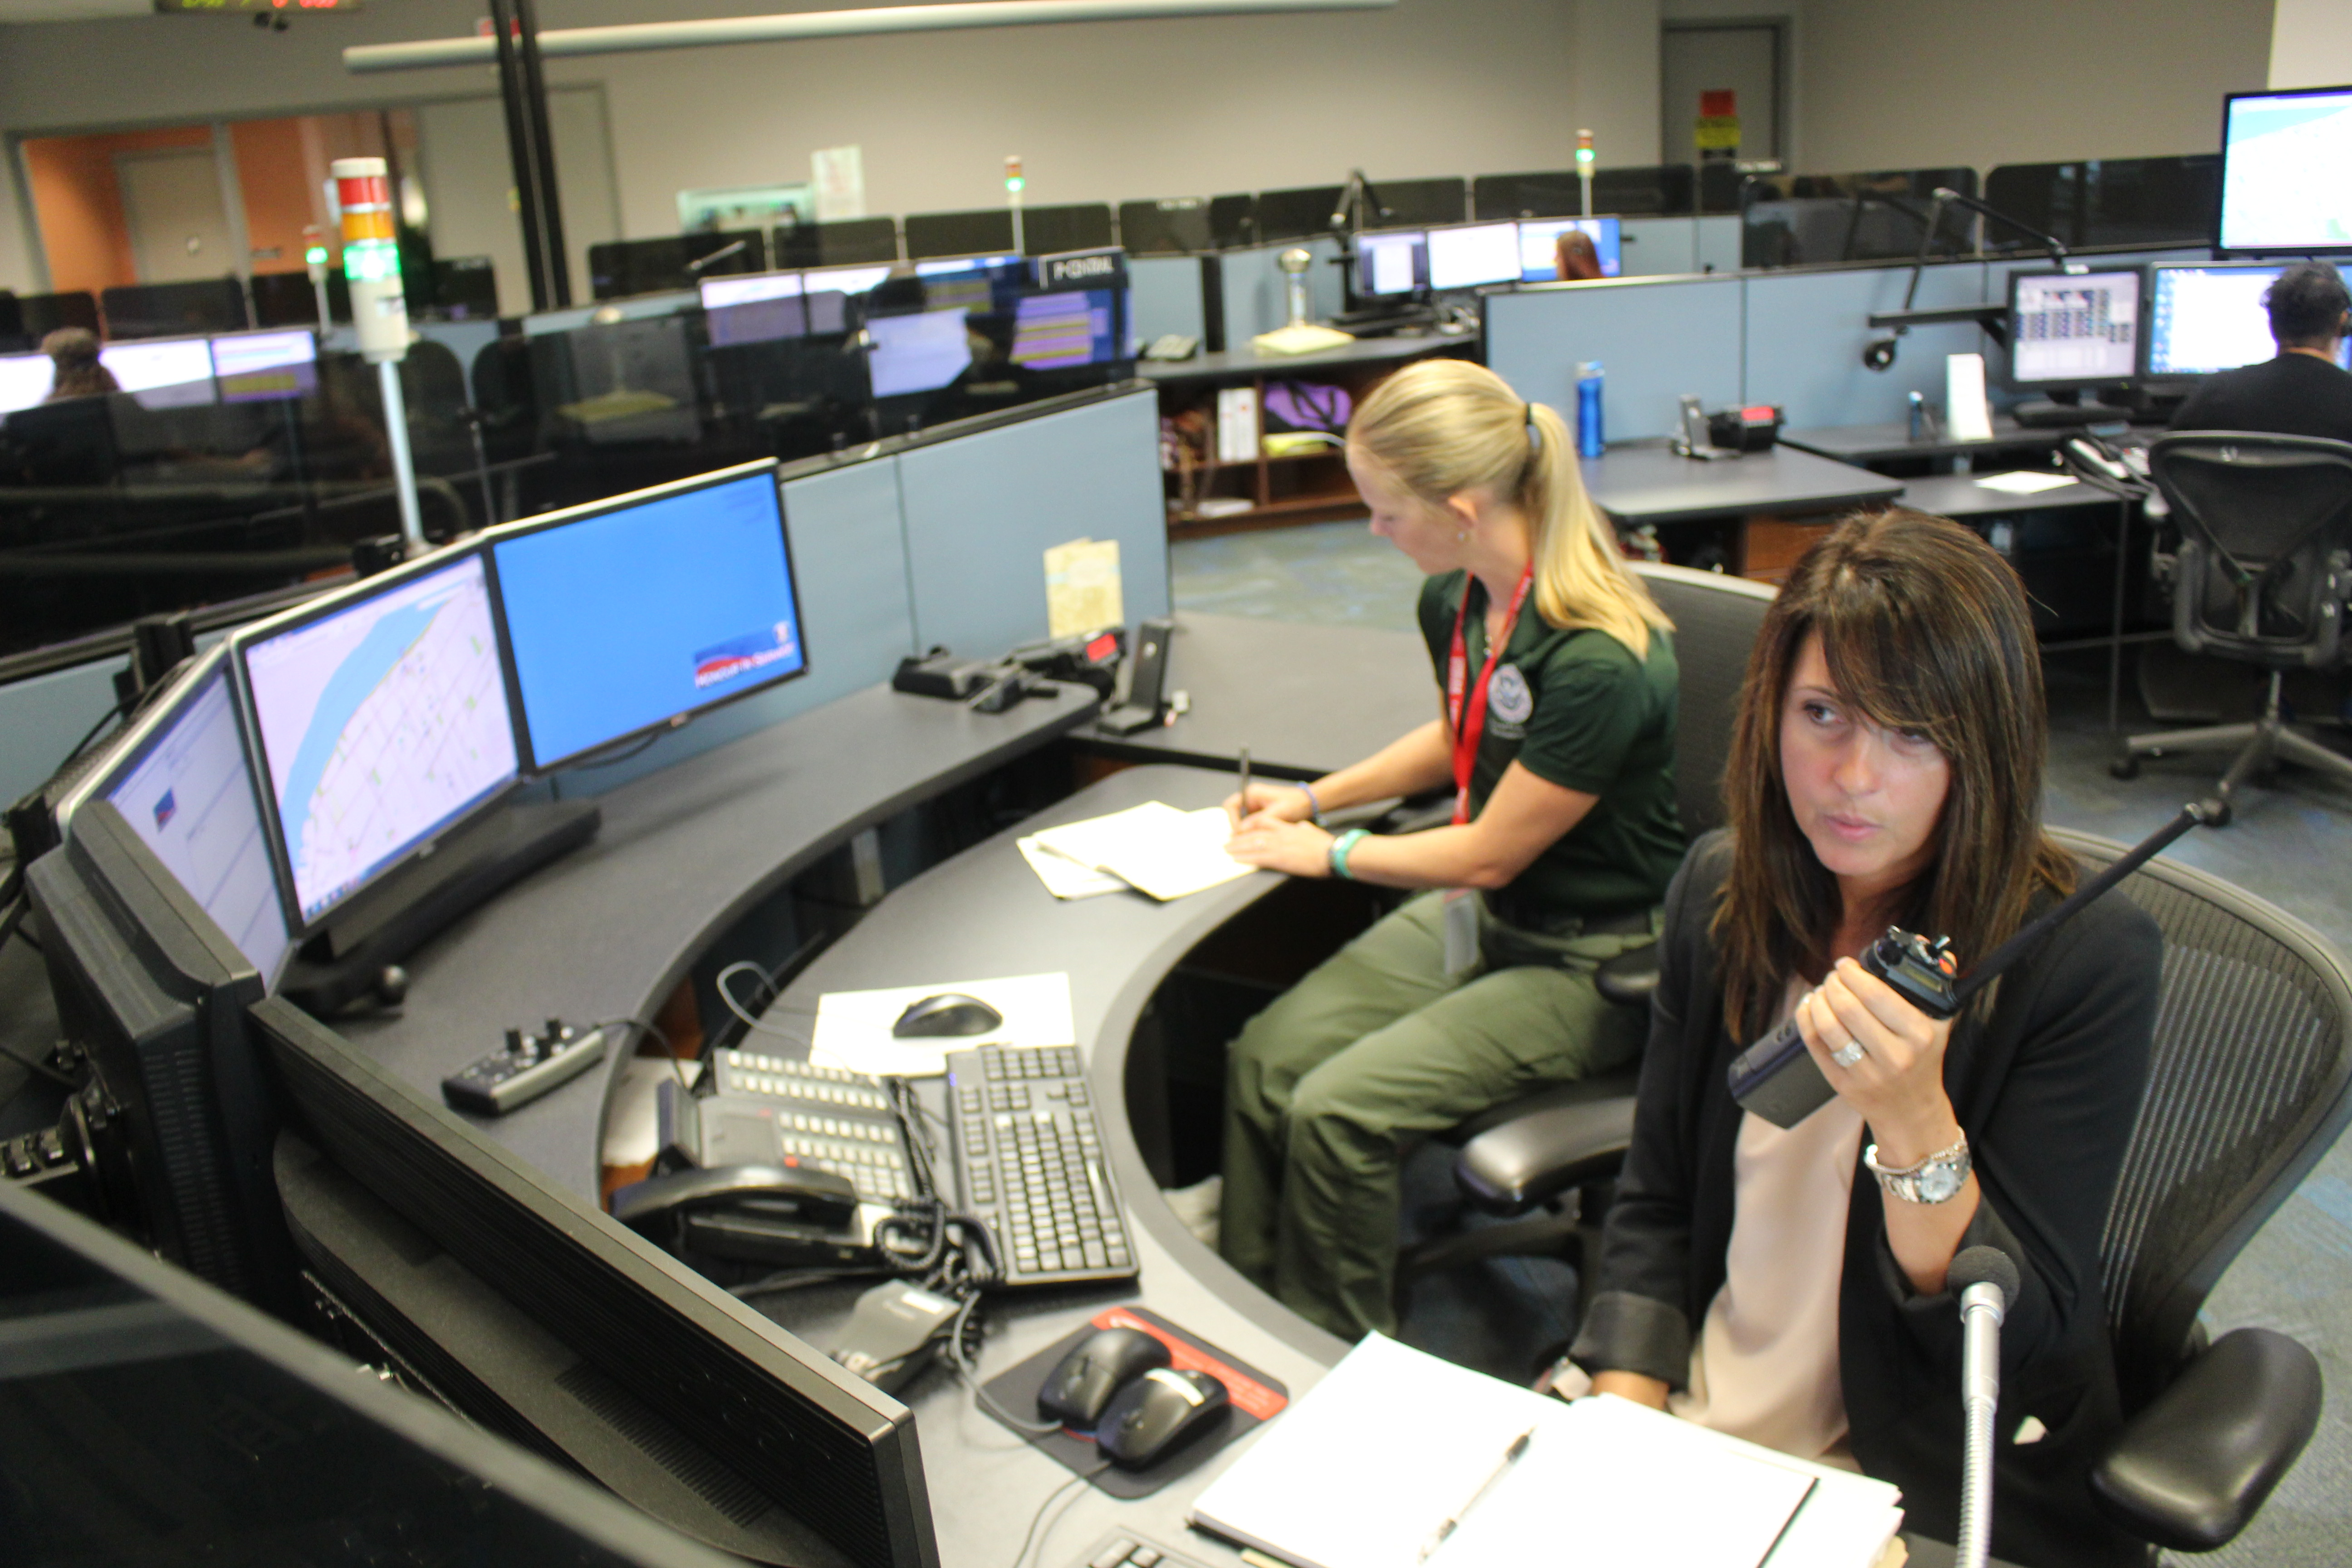 Officials with 911 dispatch in Windsor test new cross-border communication equipment, August 12, 2015. (Photo by Jason Viau)